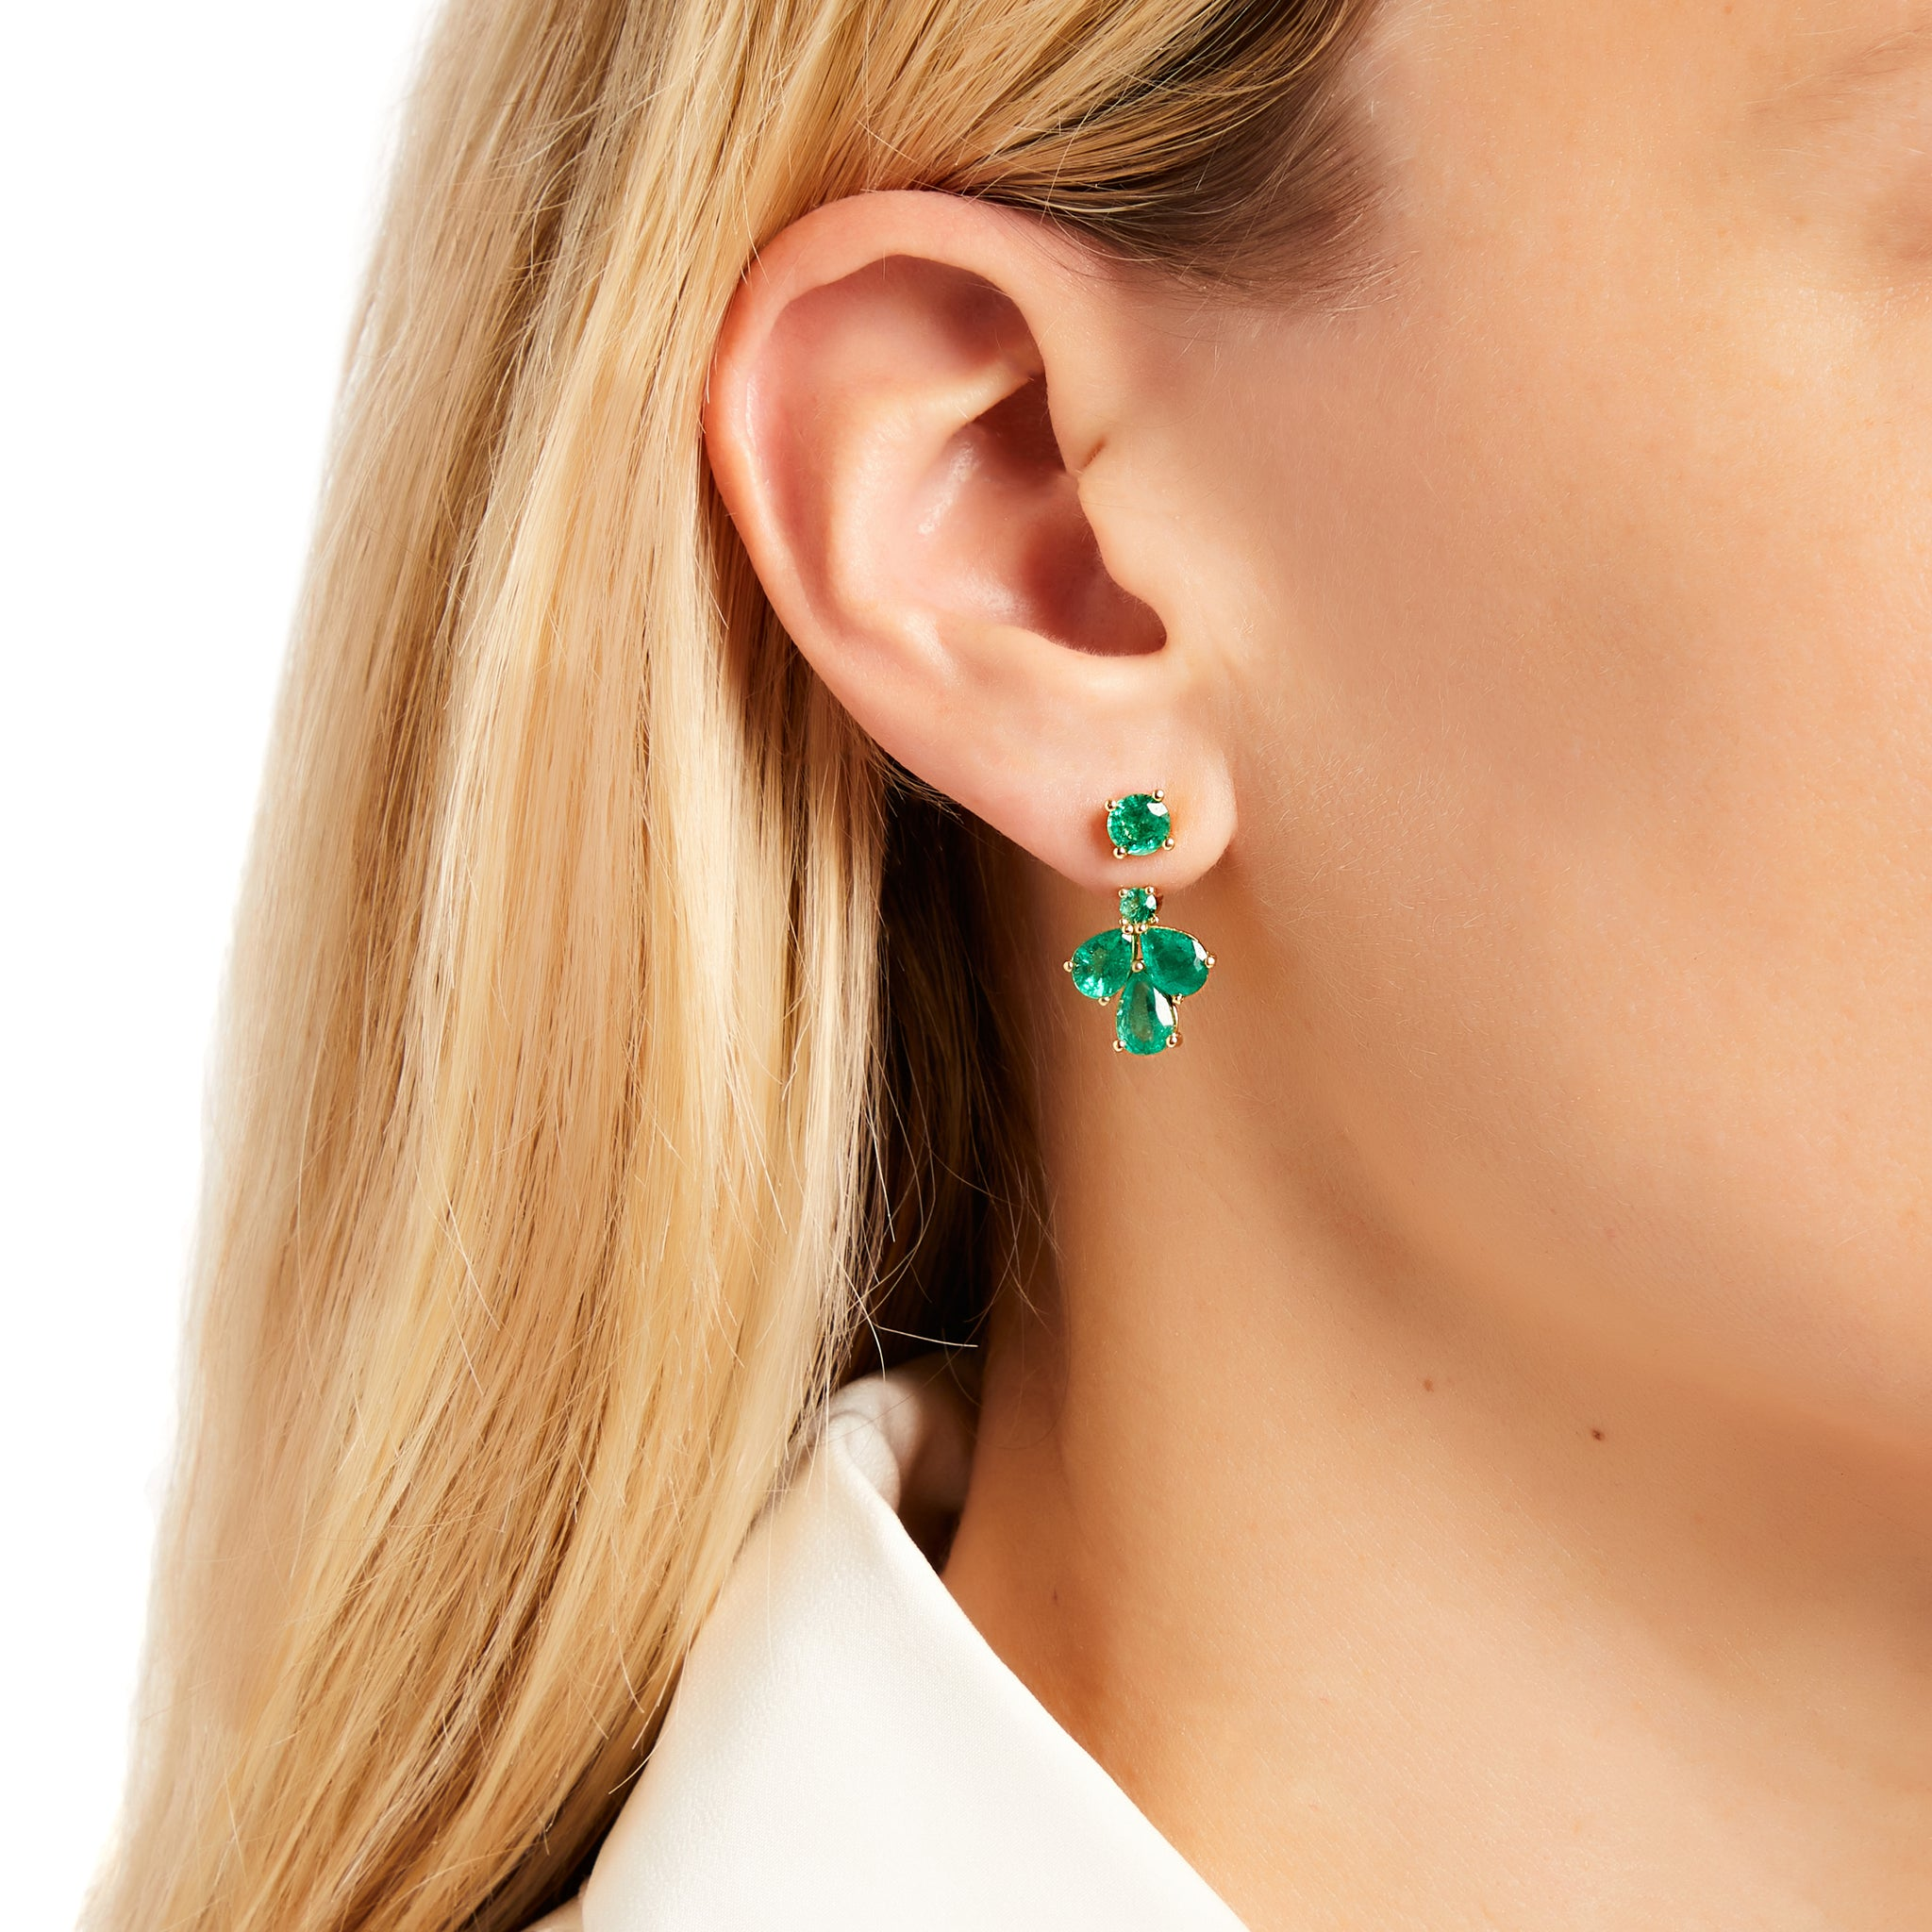 AYA x Gemfields Exclusive Emerald Ear Jacket Earrings for Walk for Giants